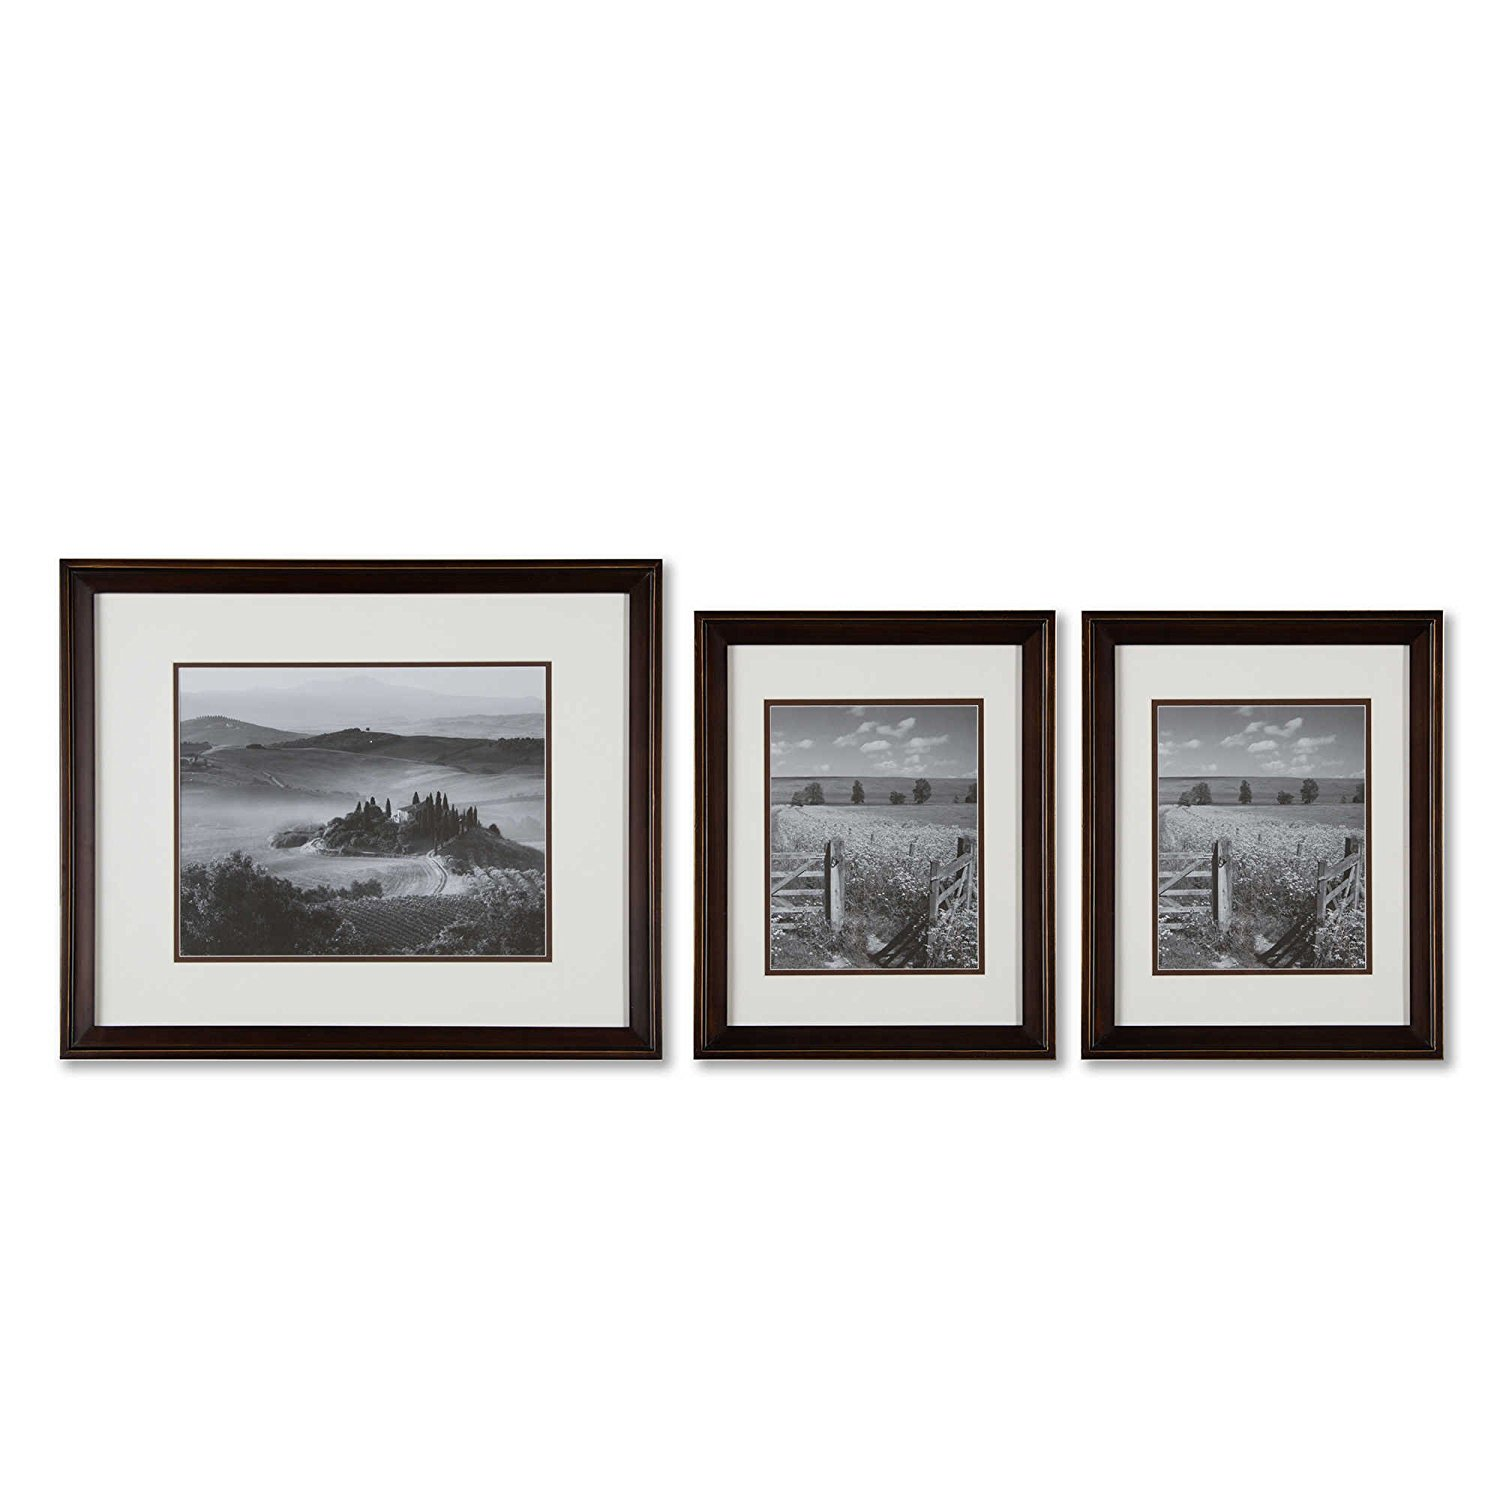 Cheap frame gallery set find frame gallery set deals on line at get quotations real simple gallery 3 piece photo frame set for wall in bronze jeuxipadfo Image collections